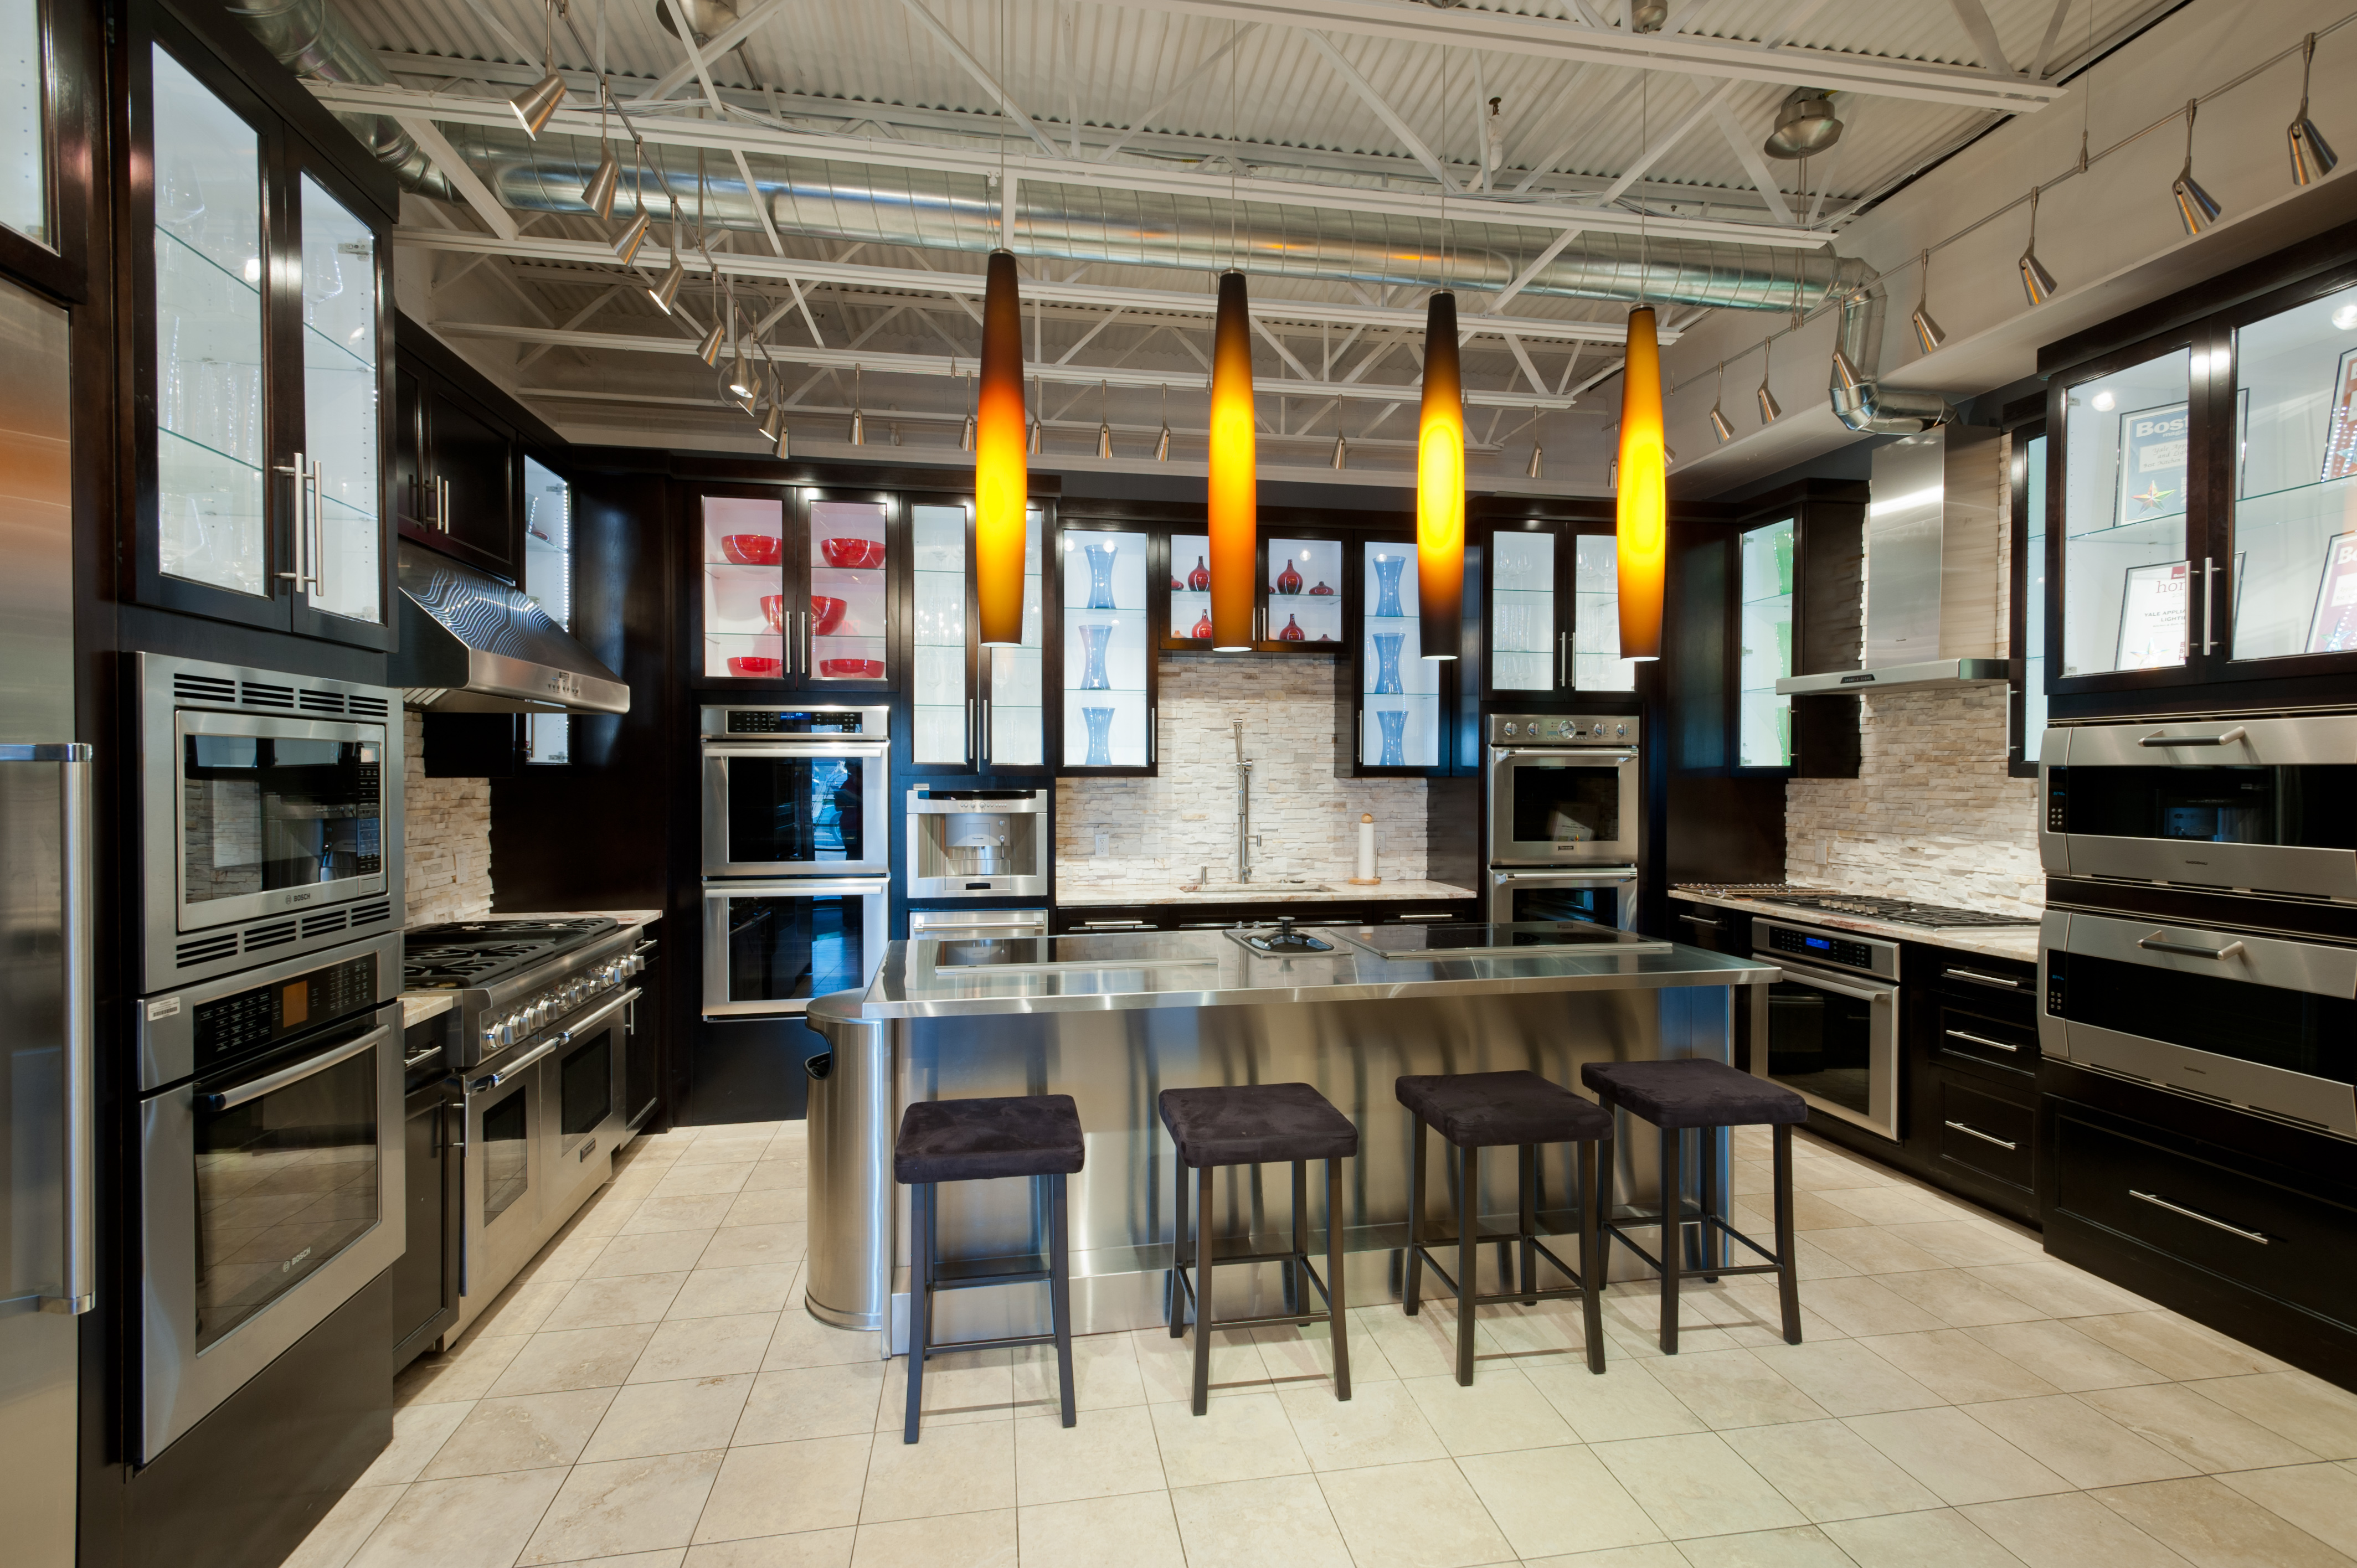 Yale Appliance Amp Lighting Dorchester Ma Groupon